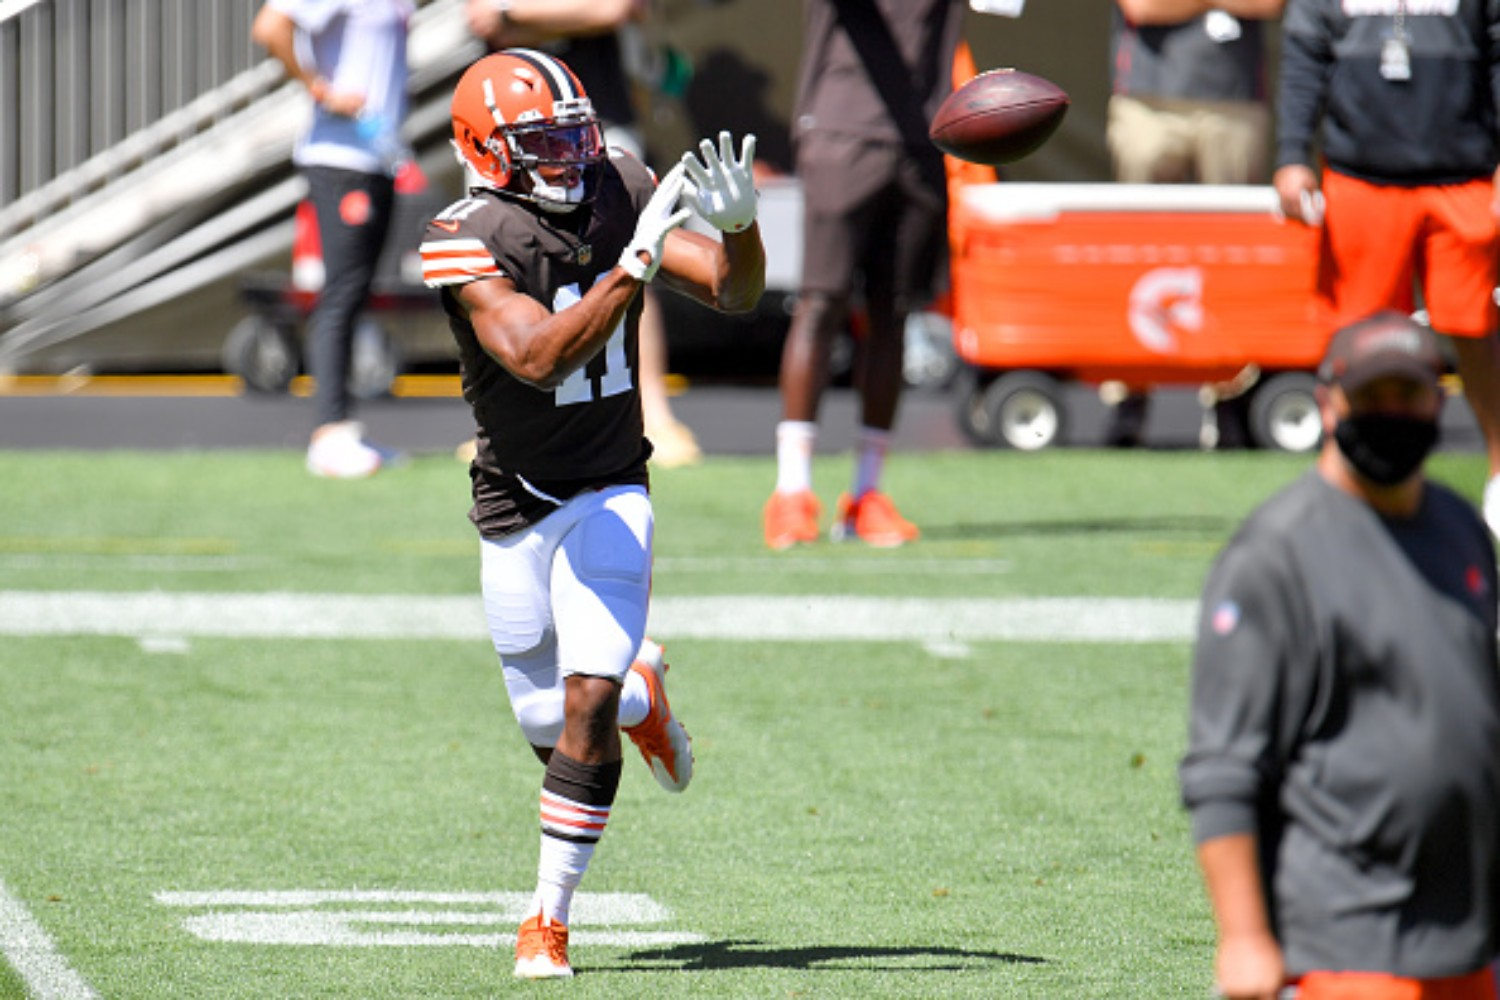 Donovan People-Jones is becoming a productive player for the Browns